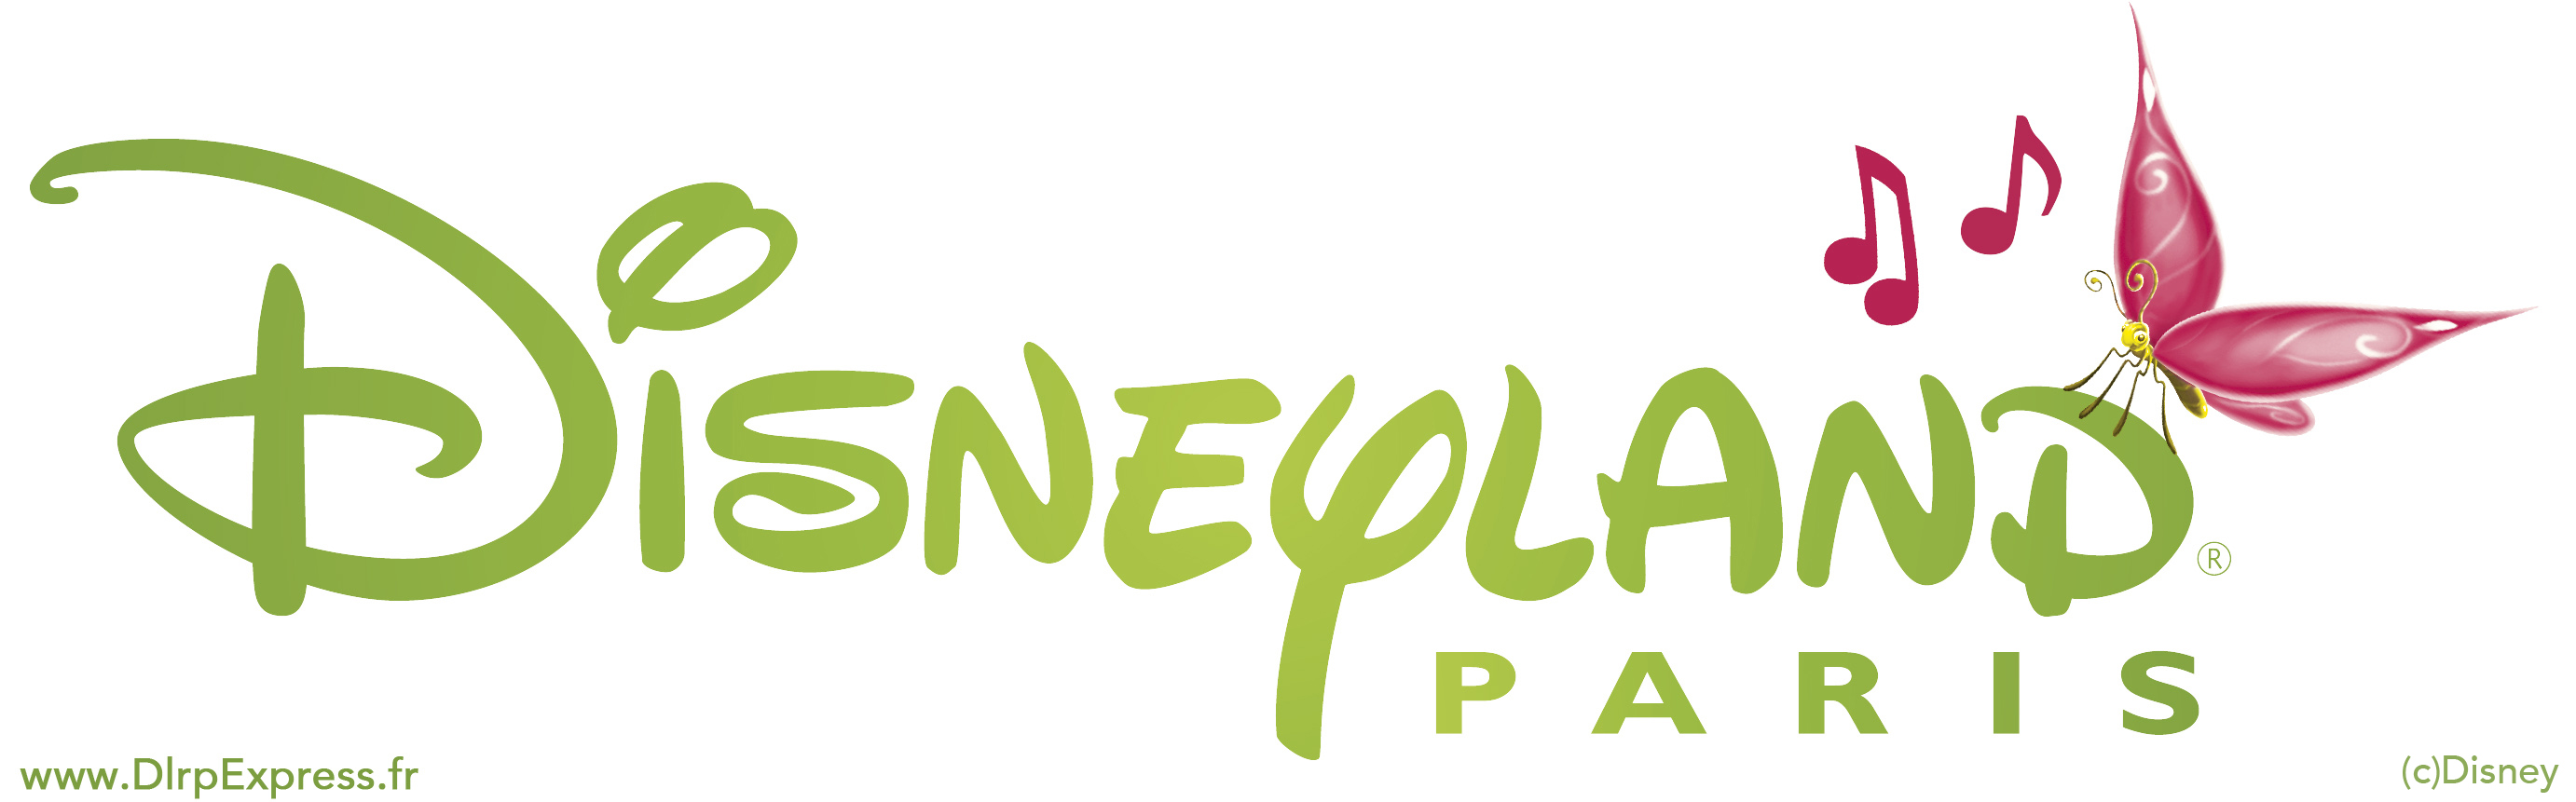 Disneyland Paris logo with butterflies